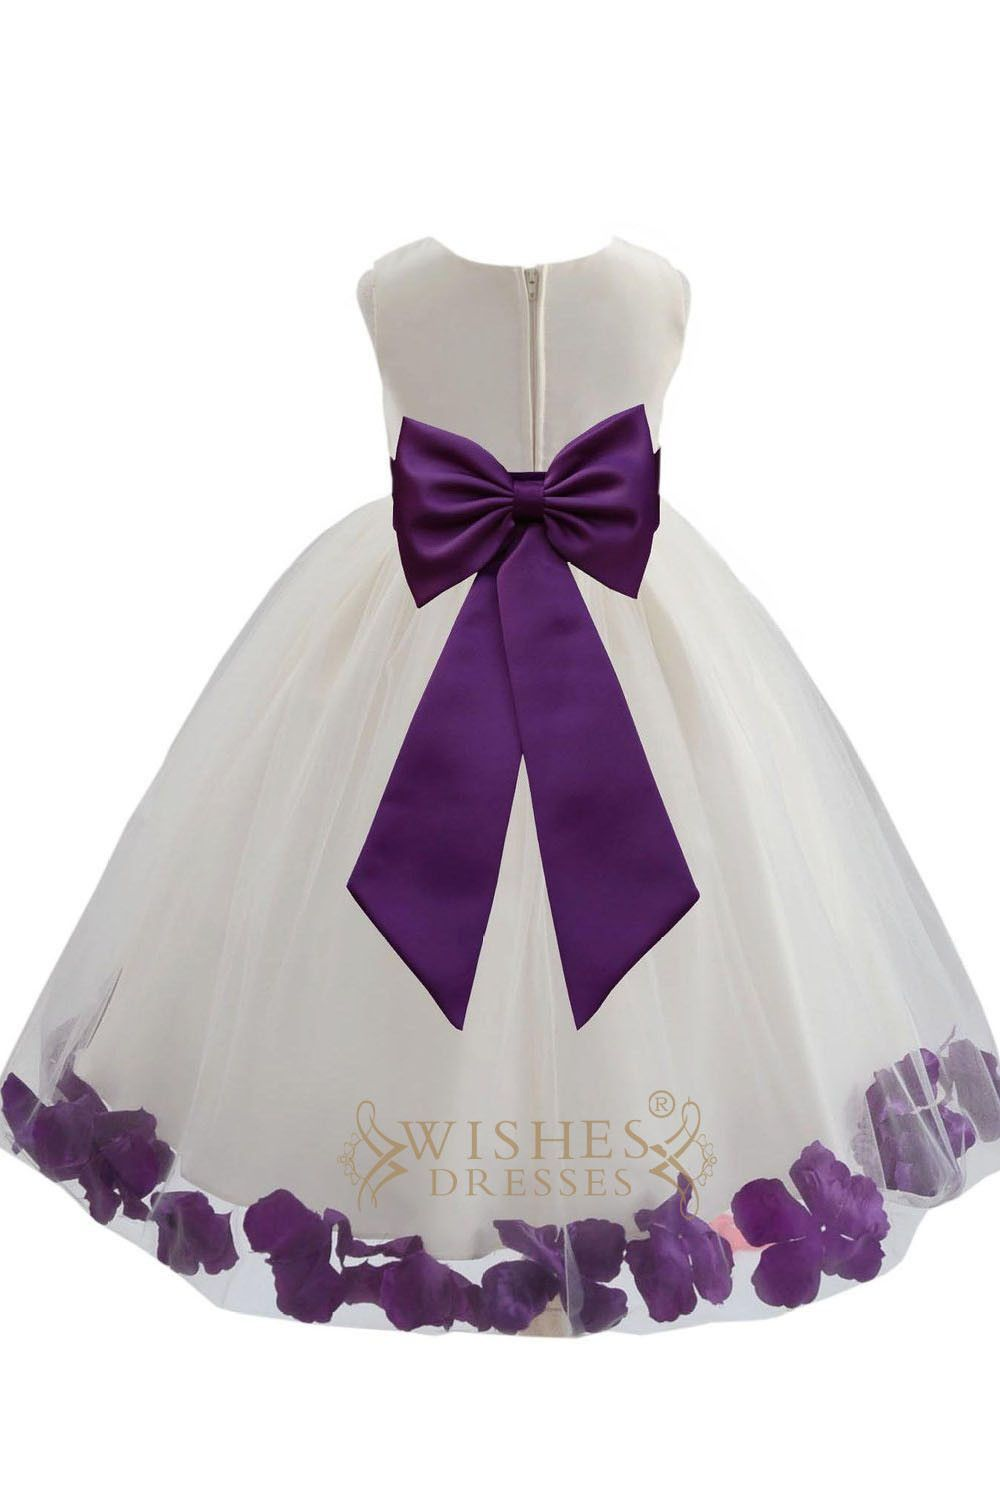 Cute Purple Detail Flower Girl Dresses Am224 | Moños, Boda púrpura y ...